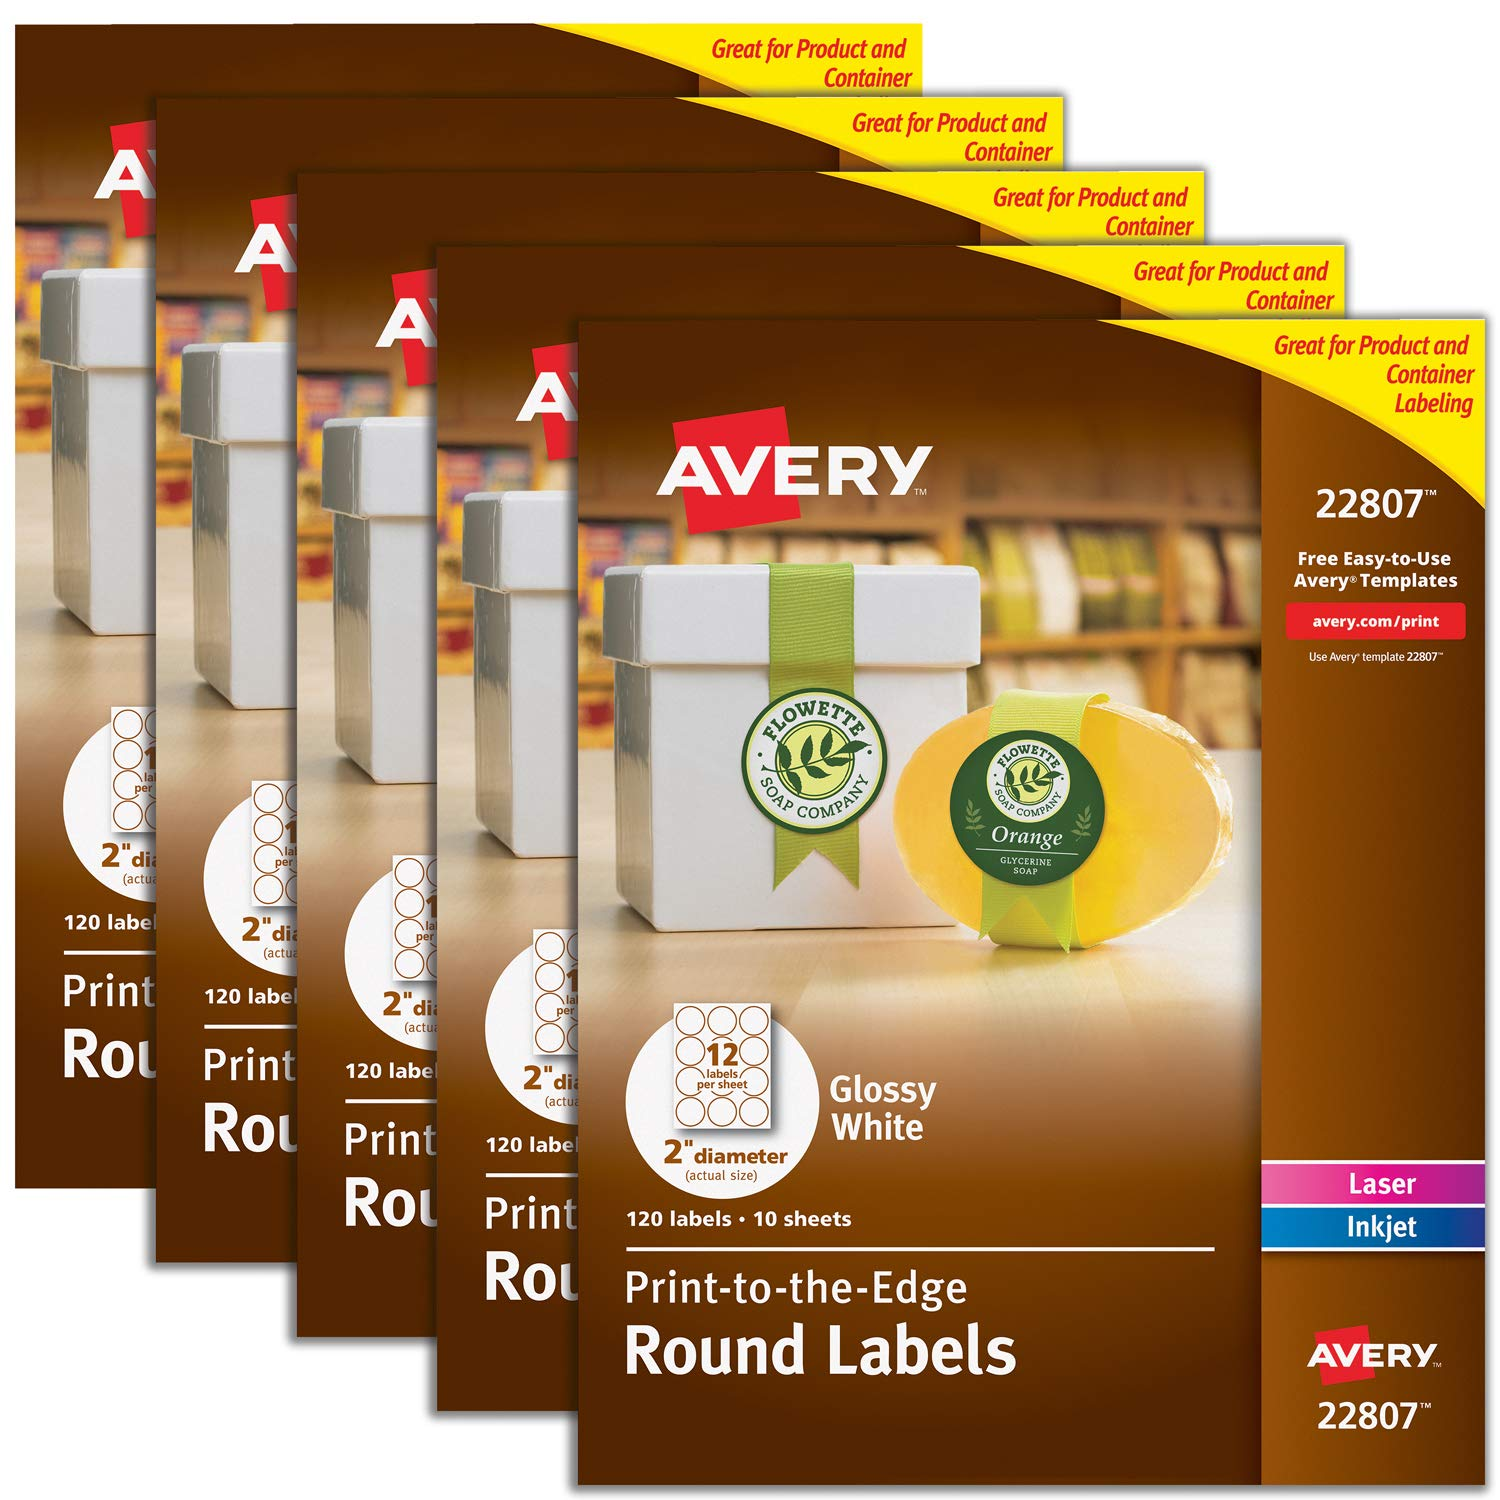 "Avery 2"" Round Labels for Laser & Inkjet Printers, 600 Glossy White Labels Total, 5 Packs (22807)"